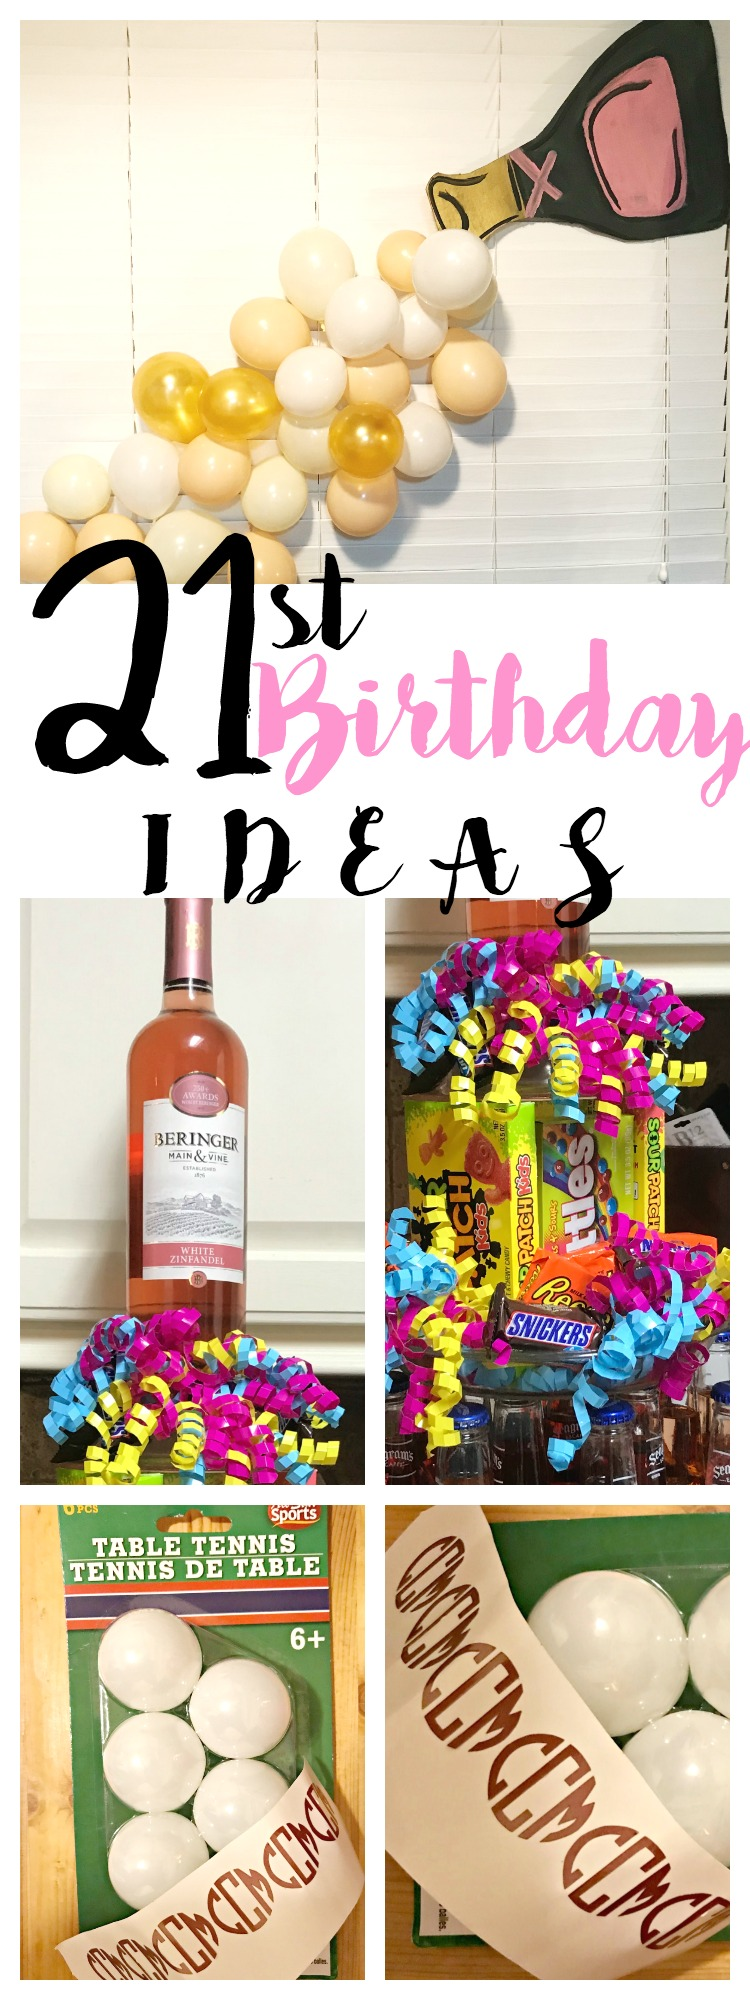 Fullsize Of 21st Birthday Party Ideas Large